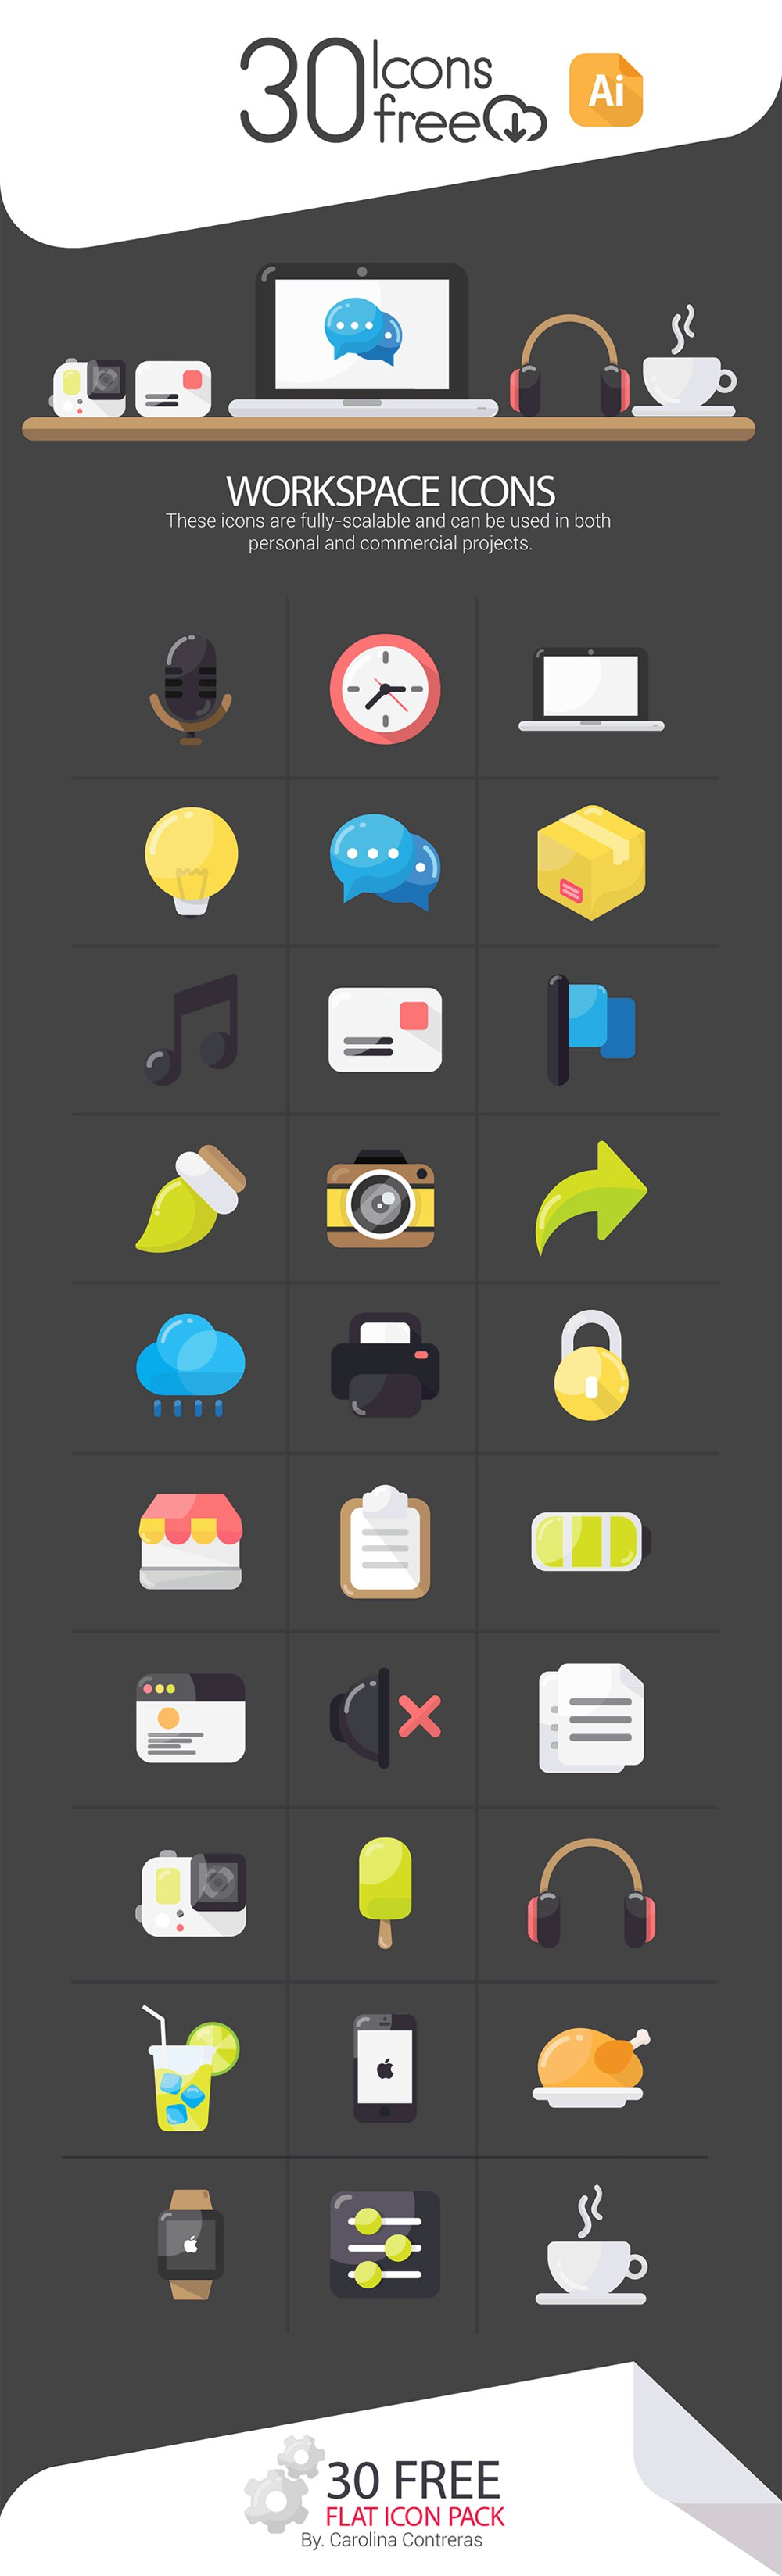 Free-Workspace-Icons